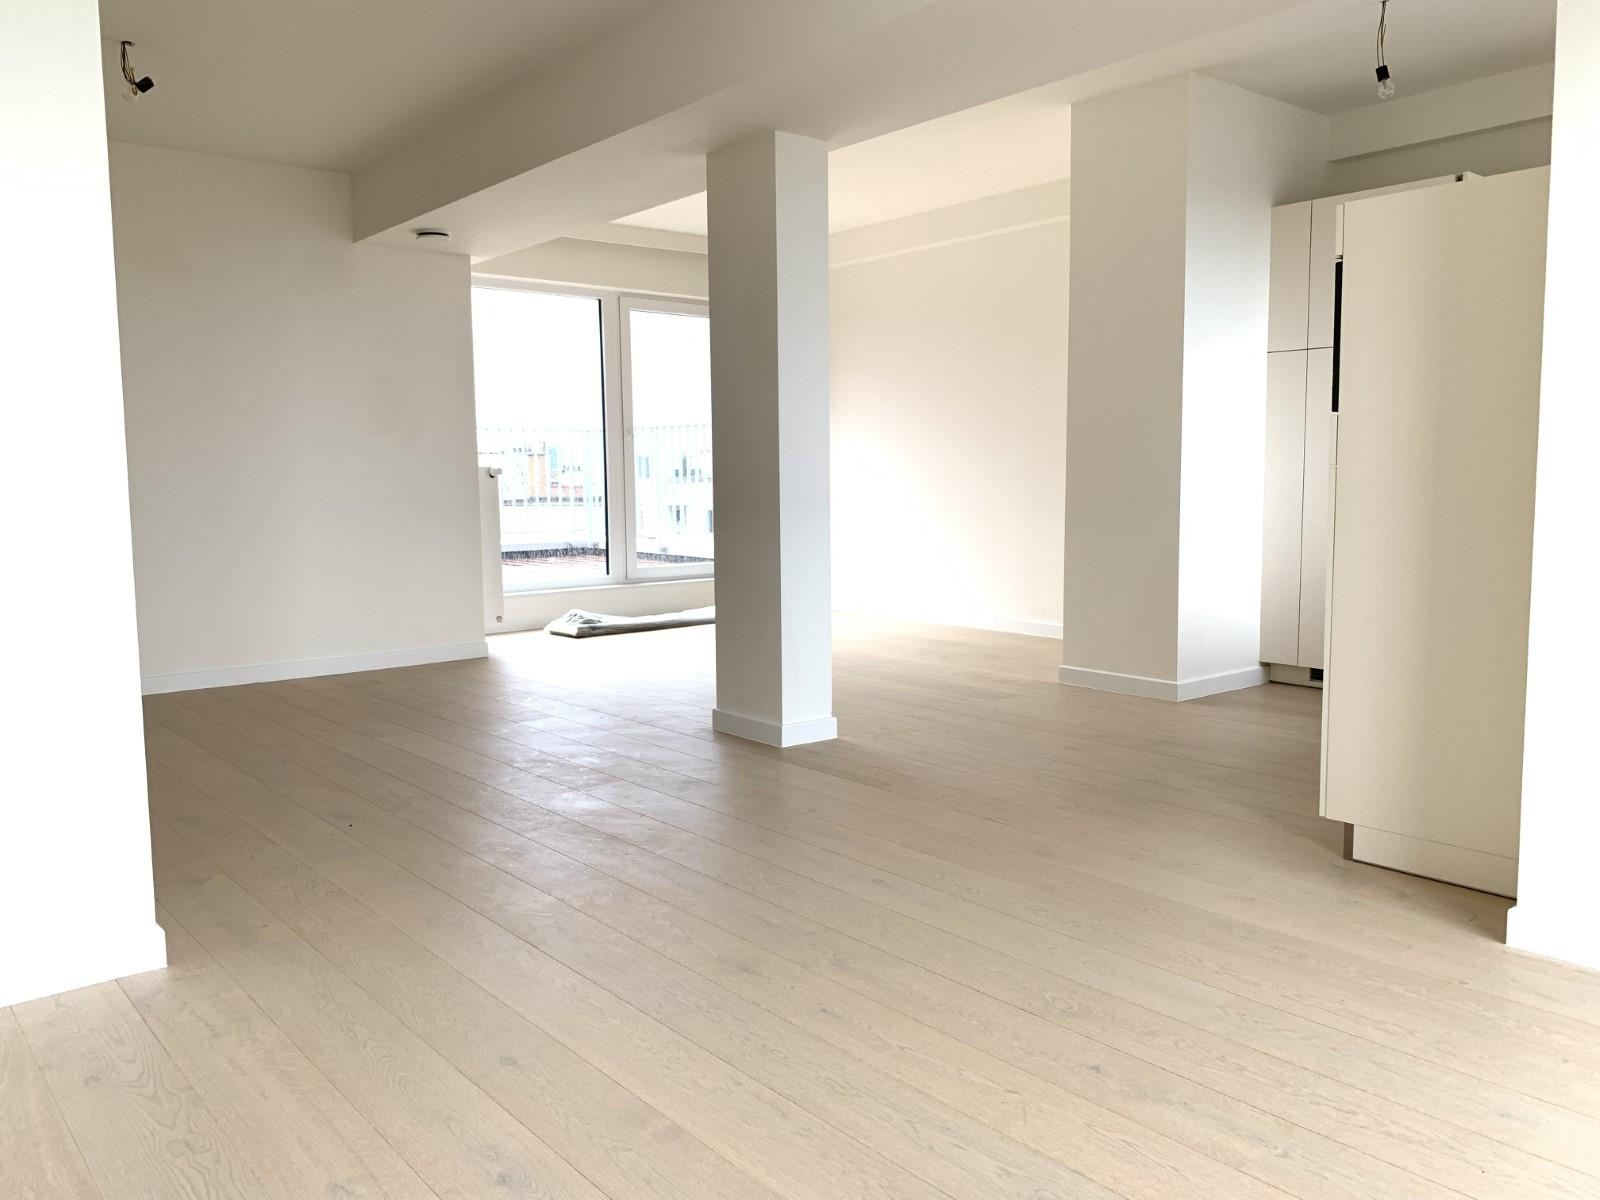 Appartement exceptionnel - Schaerbeek - #3964914-11